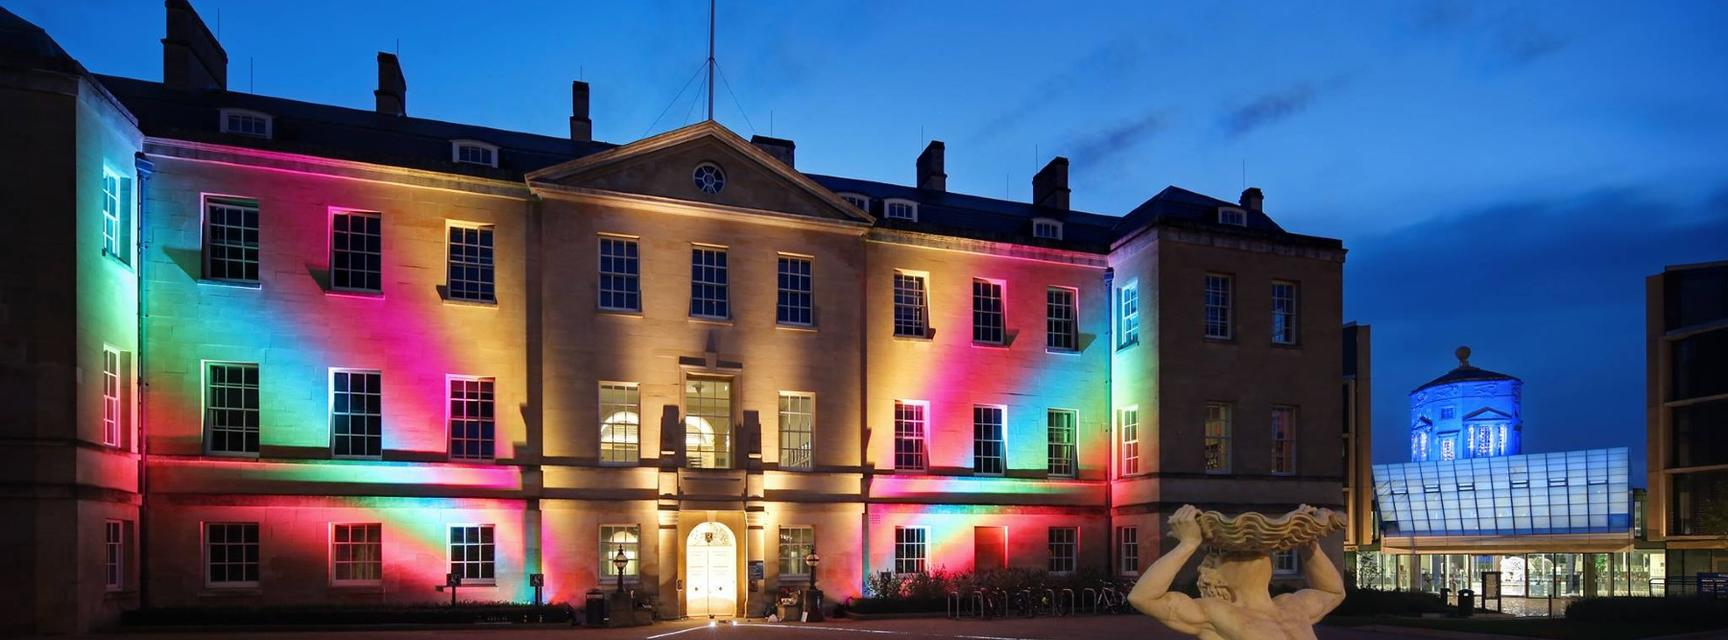 Front of TORCH building lit up with rainbow projections